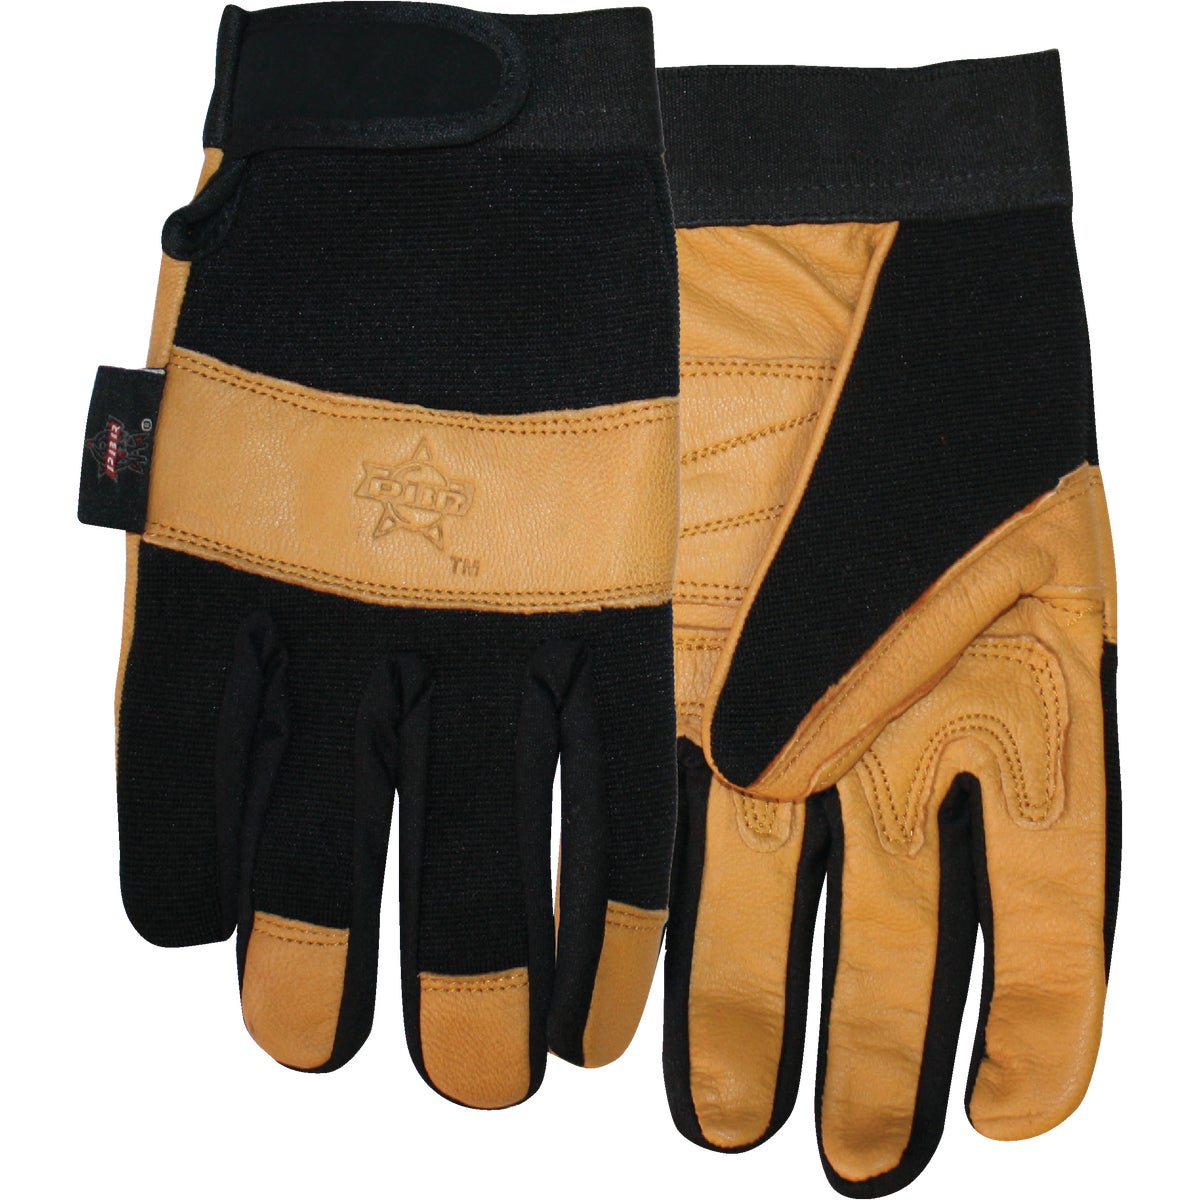 XL LTHR PALM PBR GLOVE - PB116-XL by Midwest Quality Glov